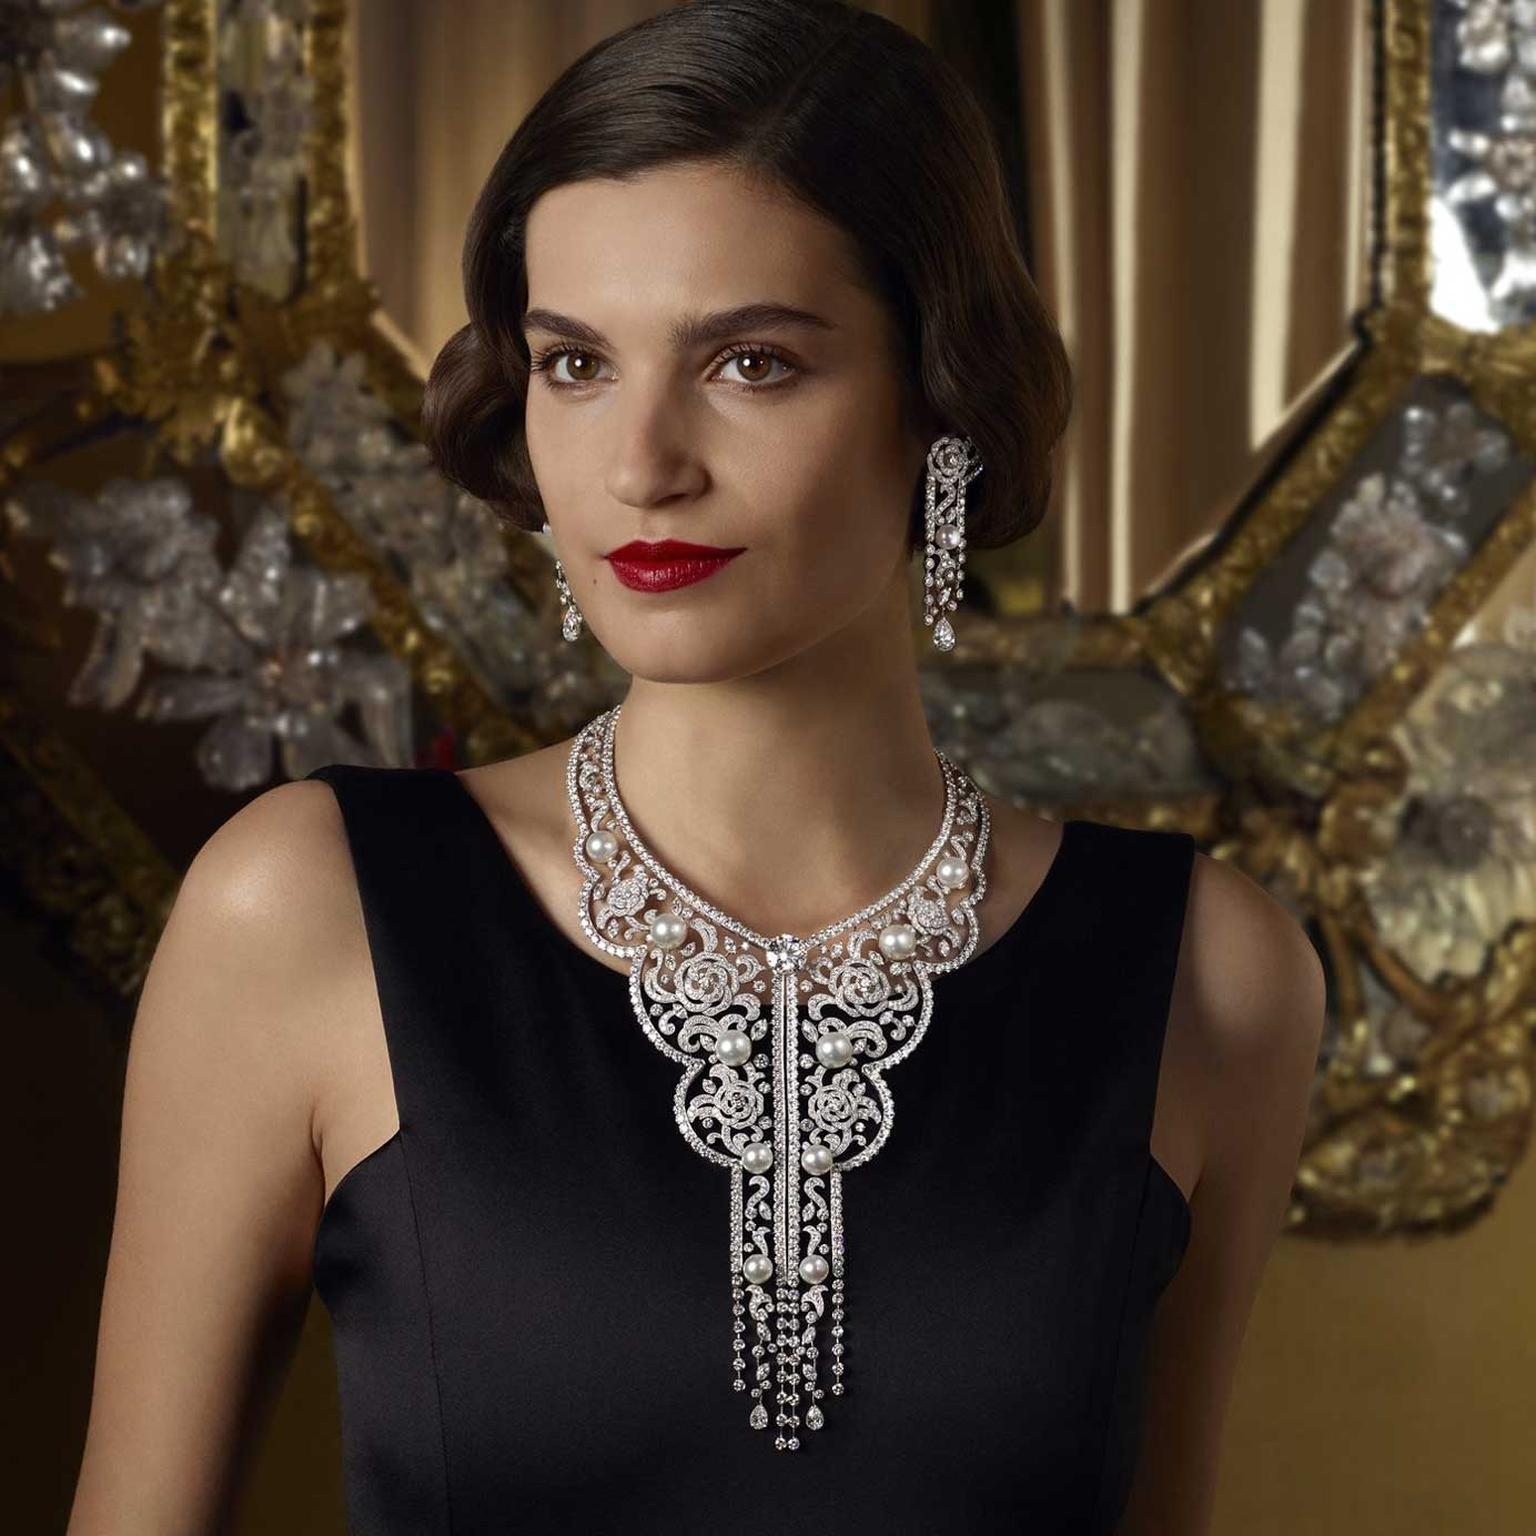 Le Paris Russe de Chanel on model